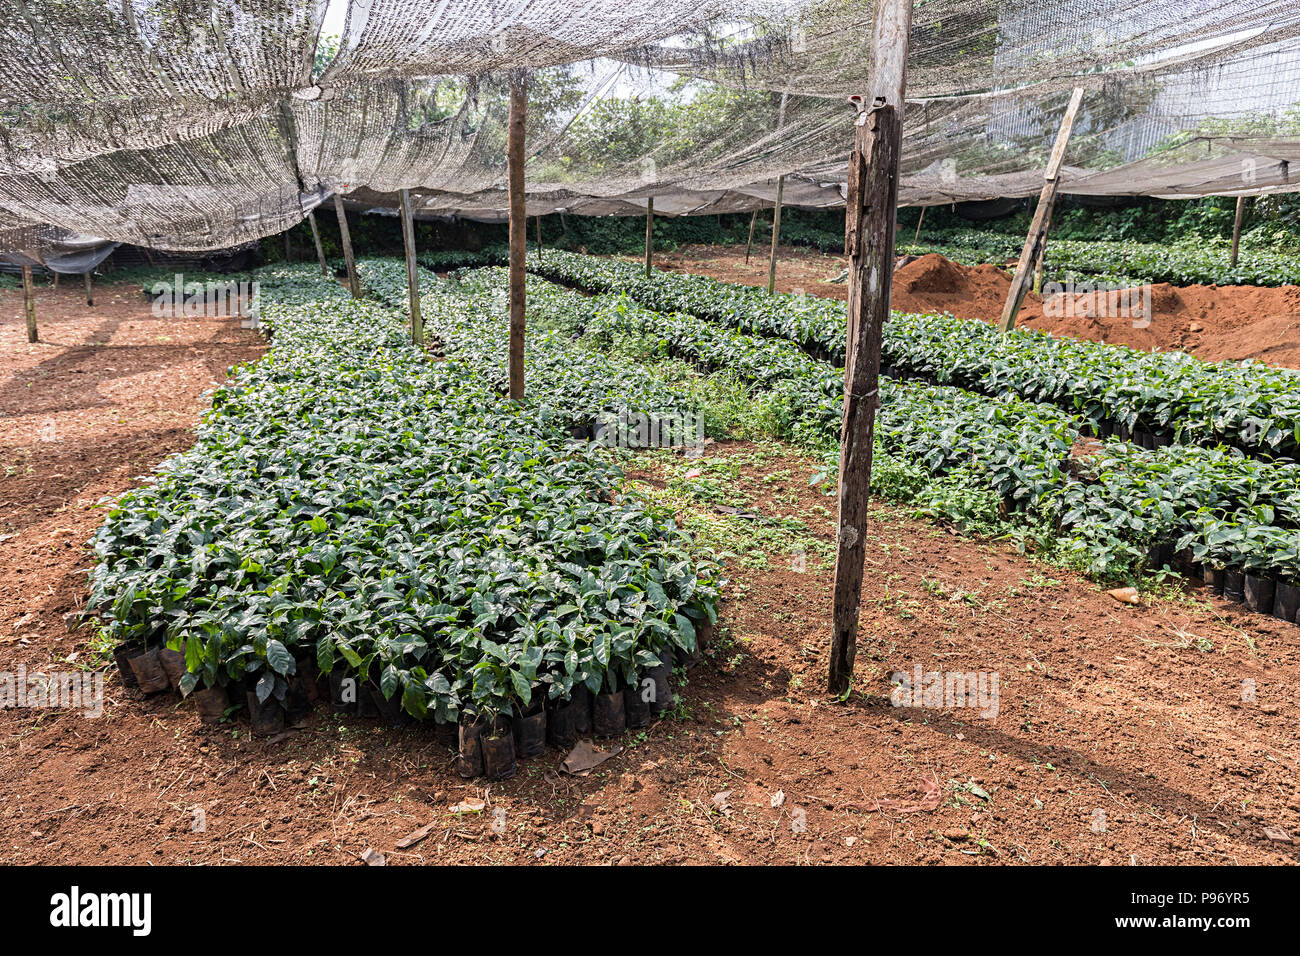 Coffee seedlings in plantation nursery, Paksong, Laos - Stock Image